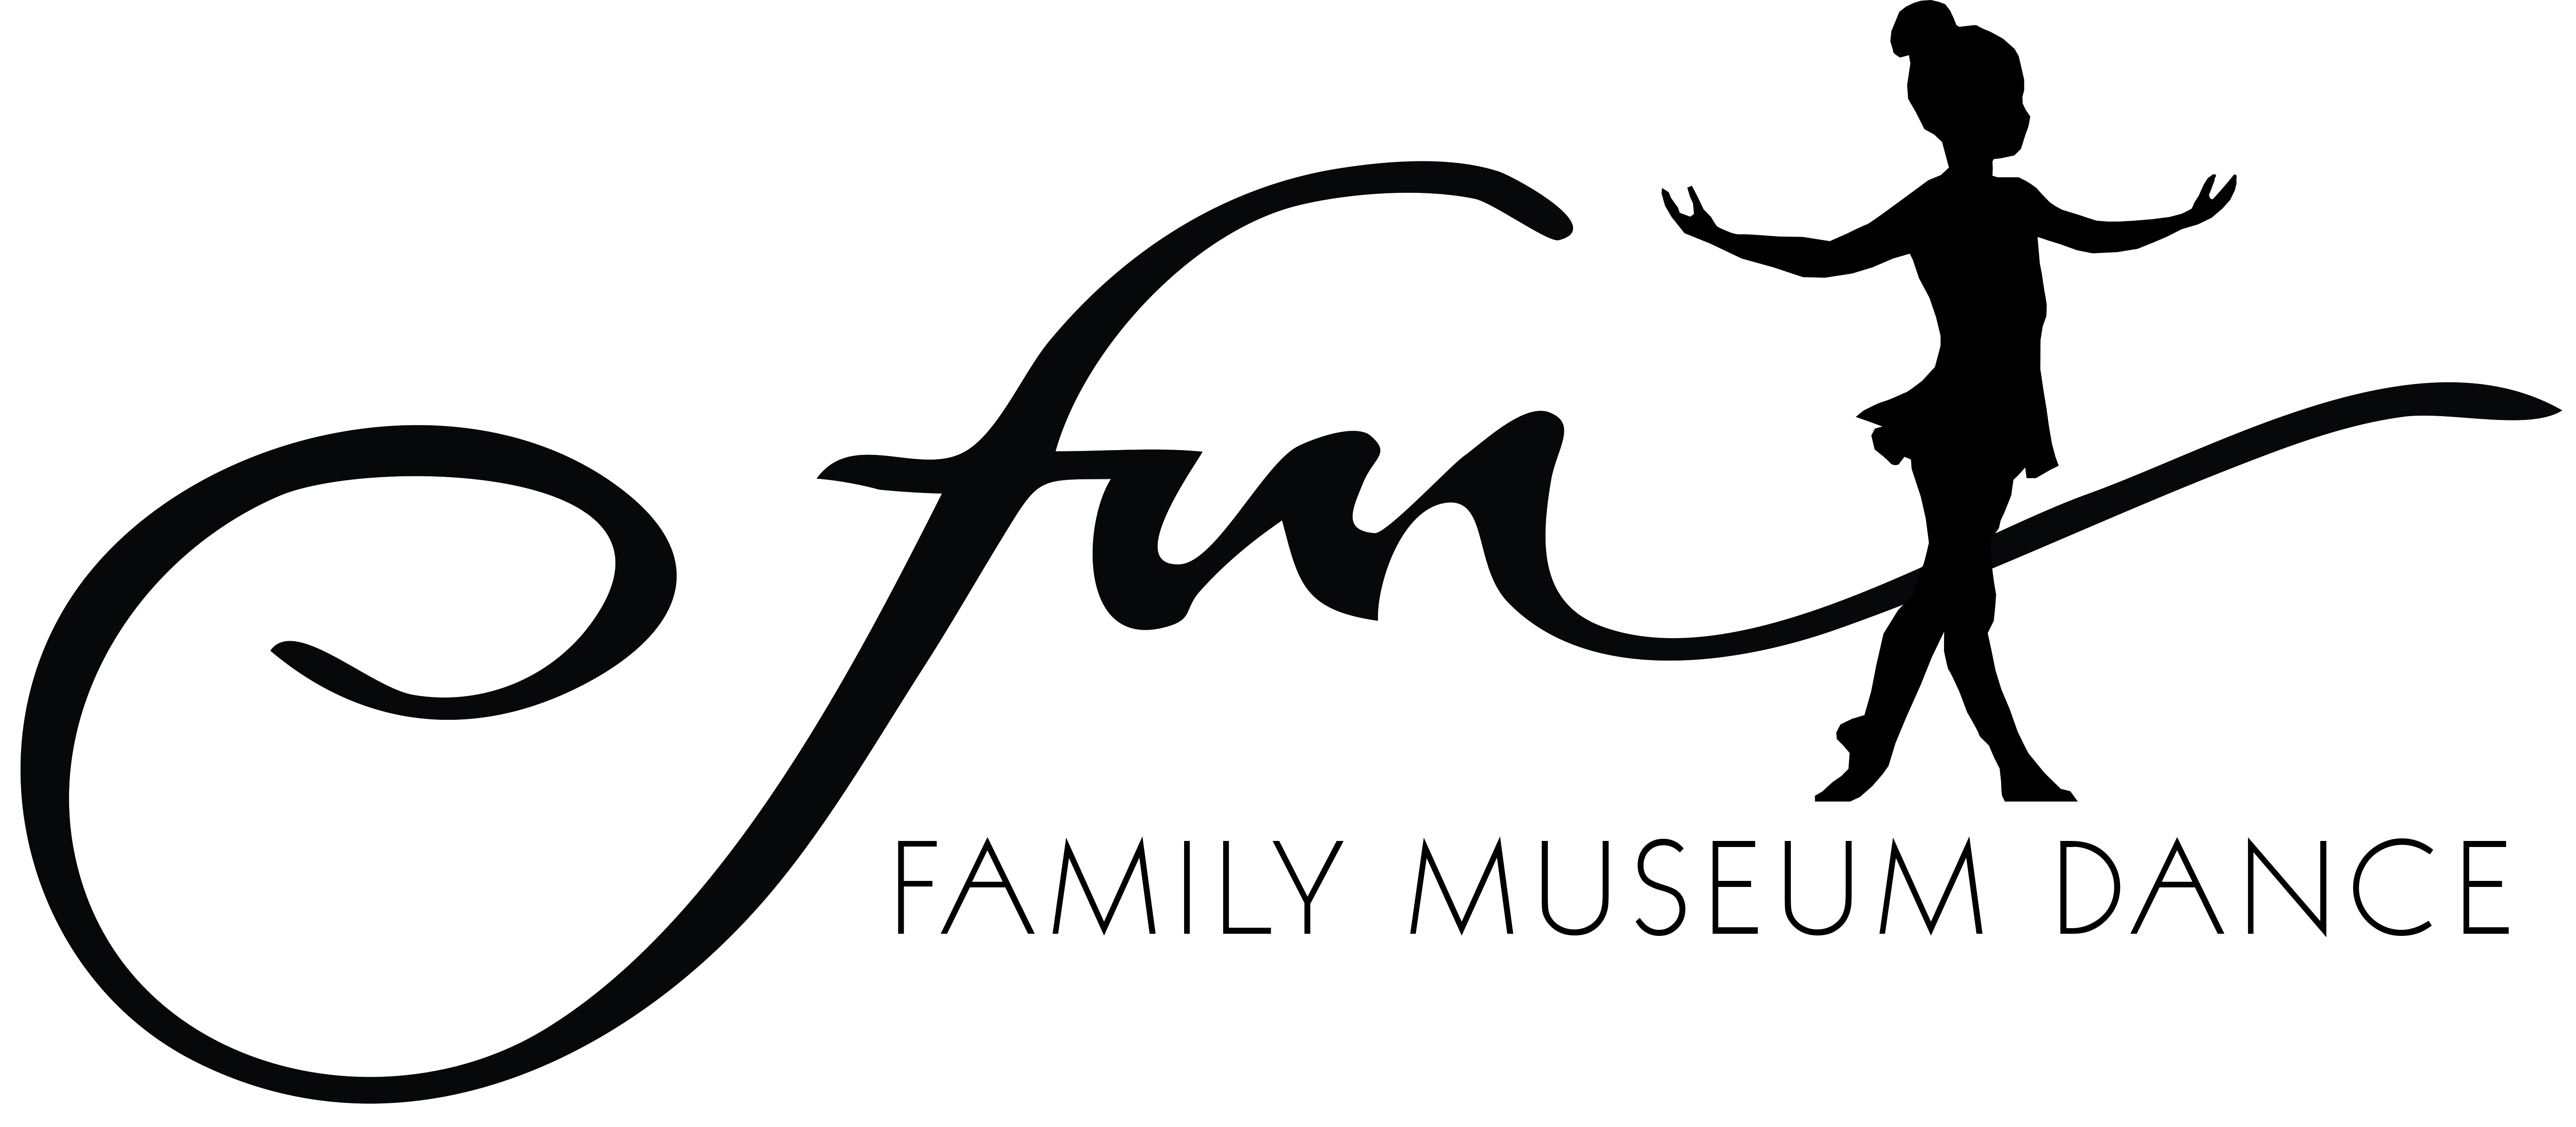 Family museum dance logo with dancer